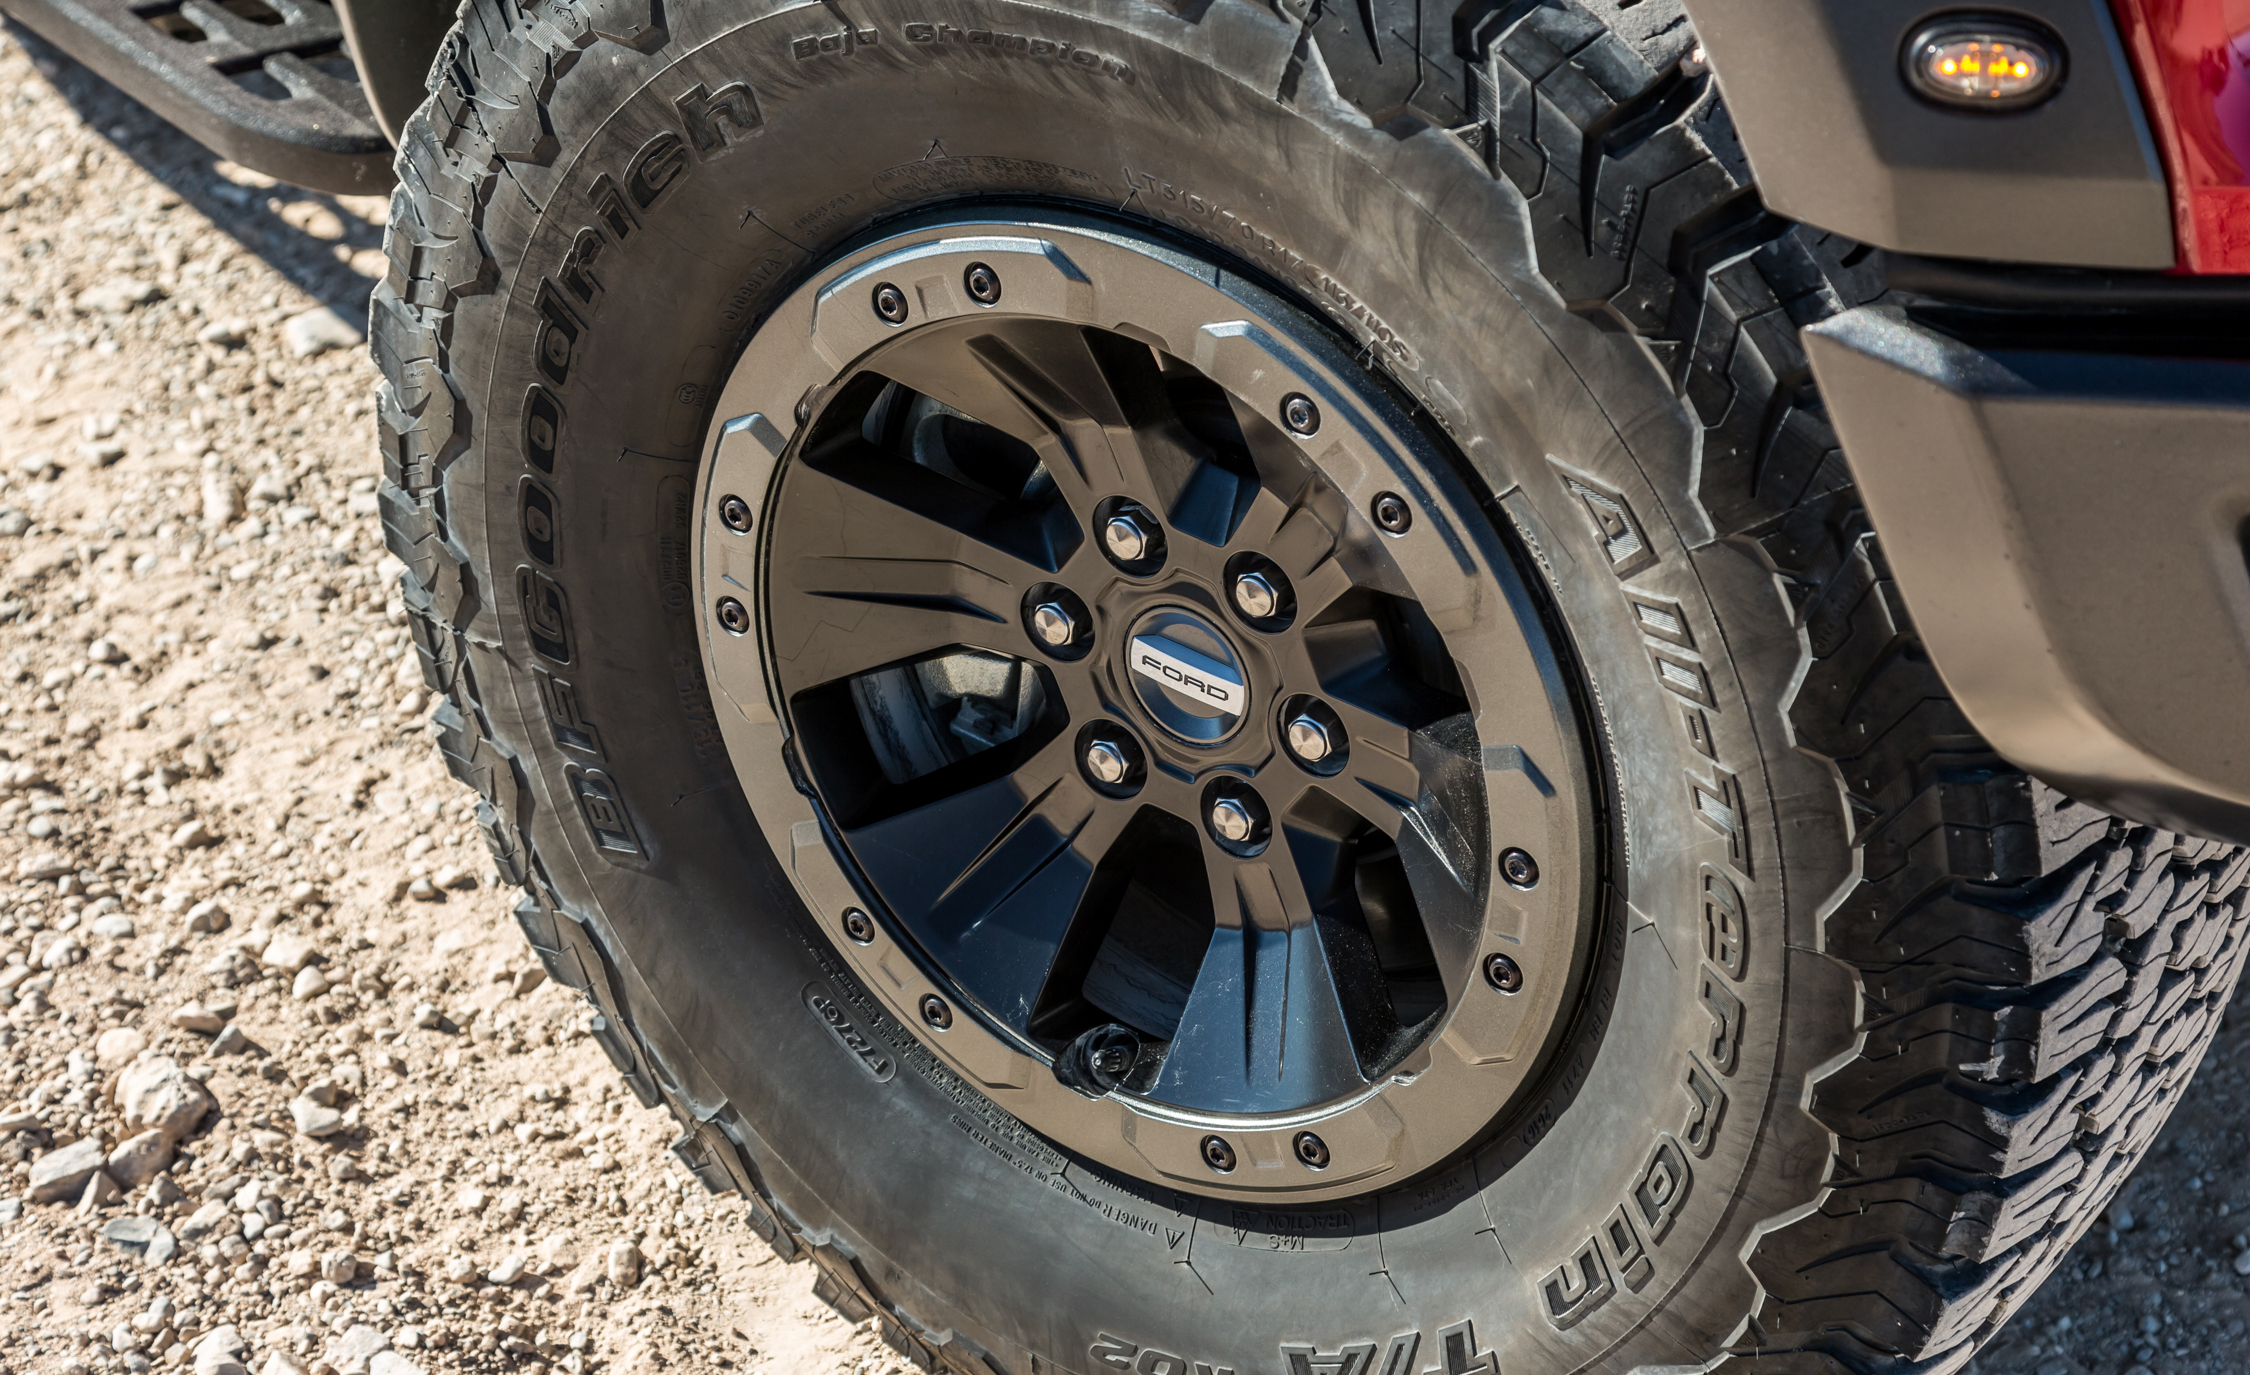 2017 Ford F 150 Raptor SuperCab Exterior View Wheel Trim (View 42 of 47)